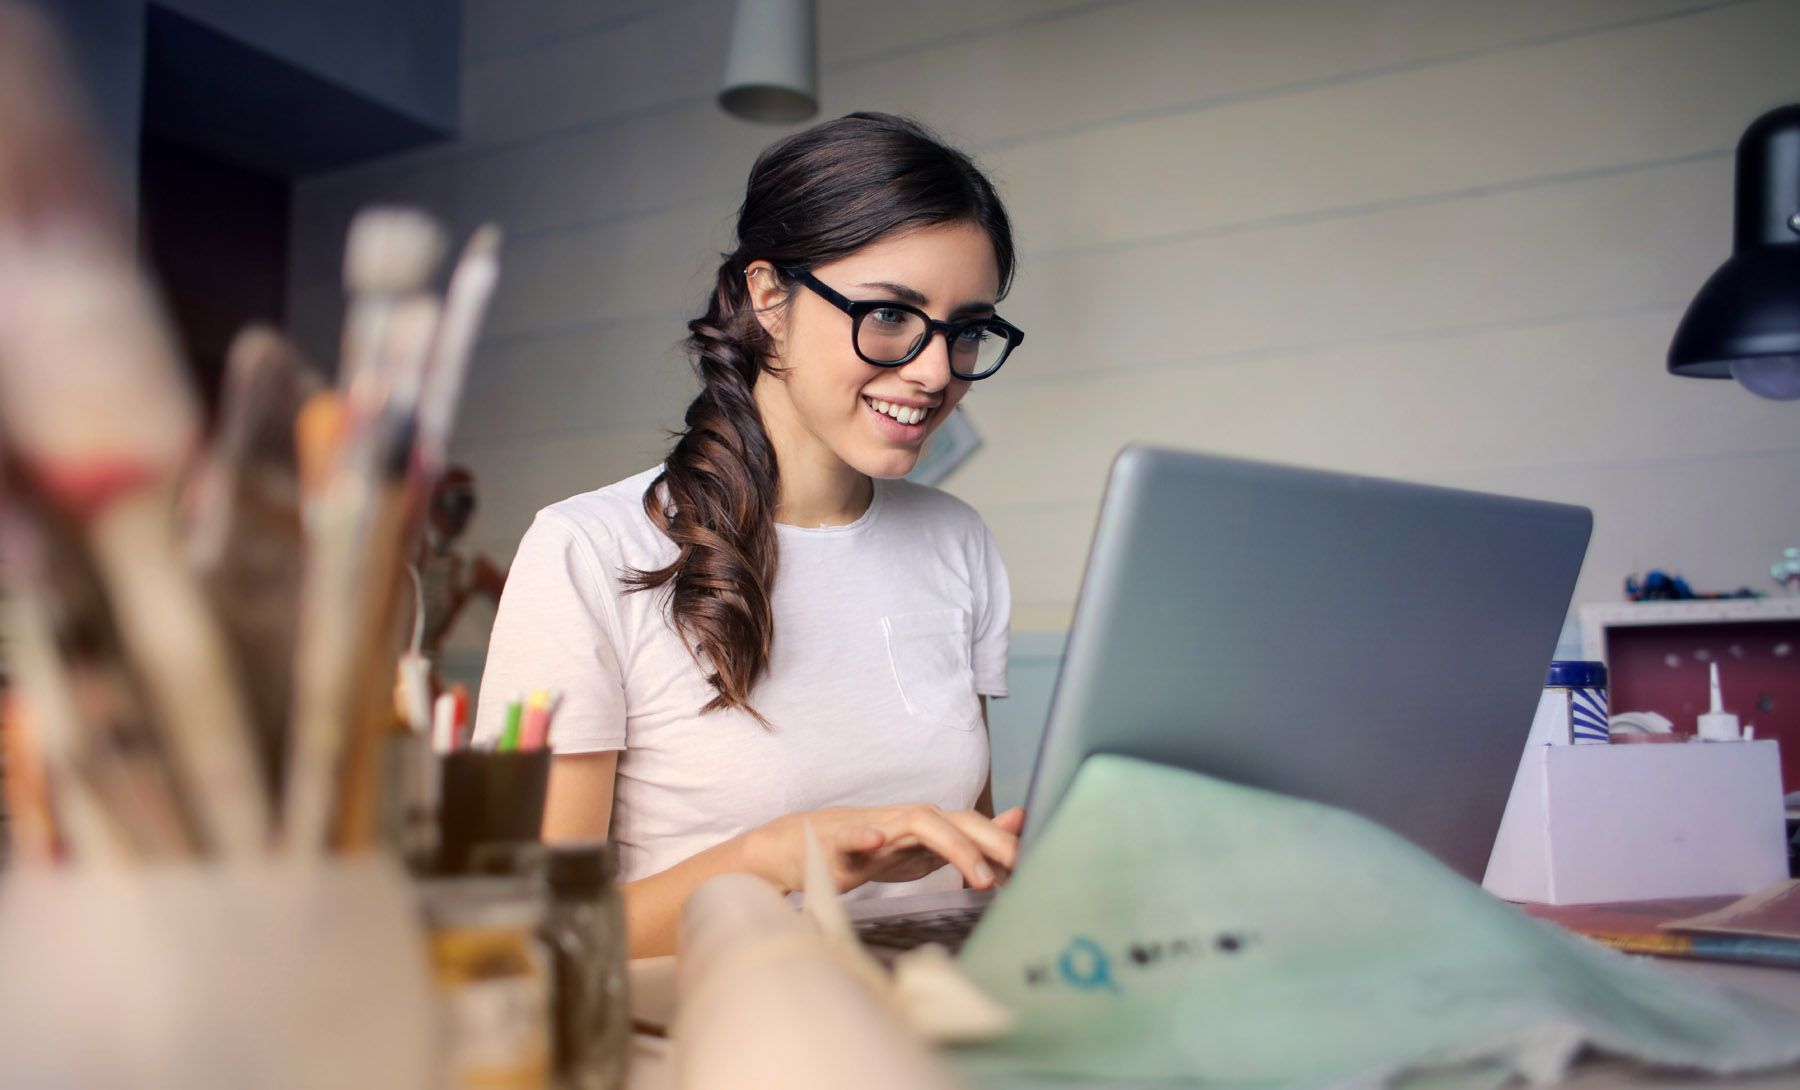 Woman in art studio working on laptop and smiling